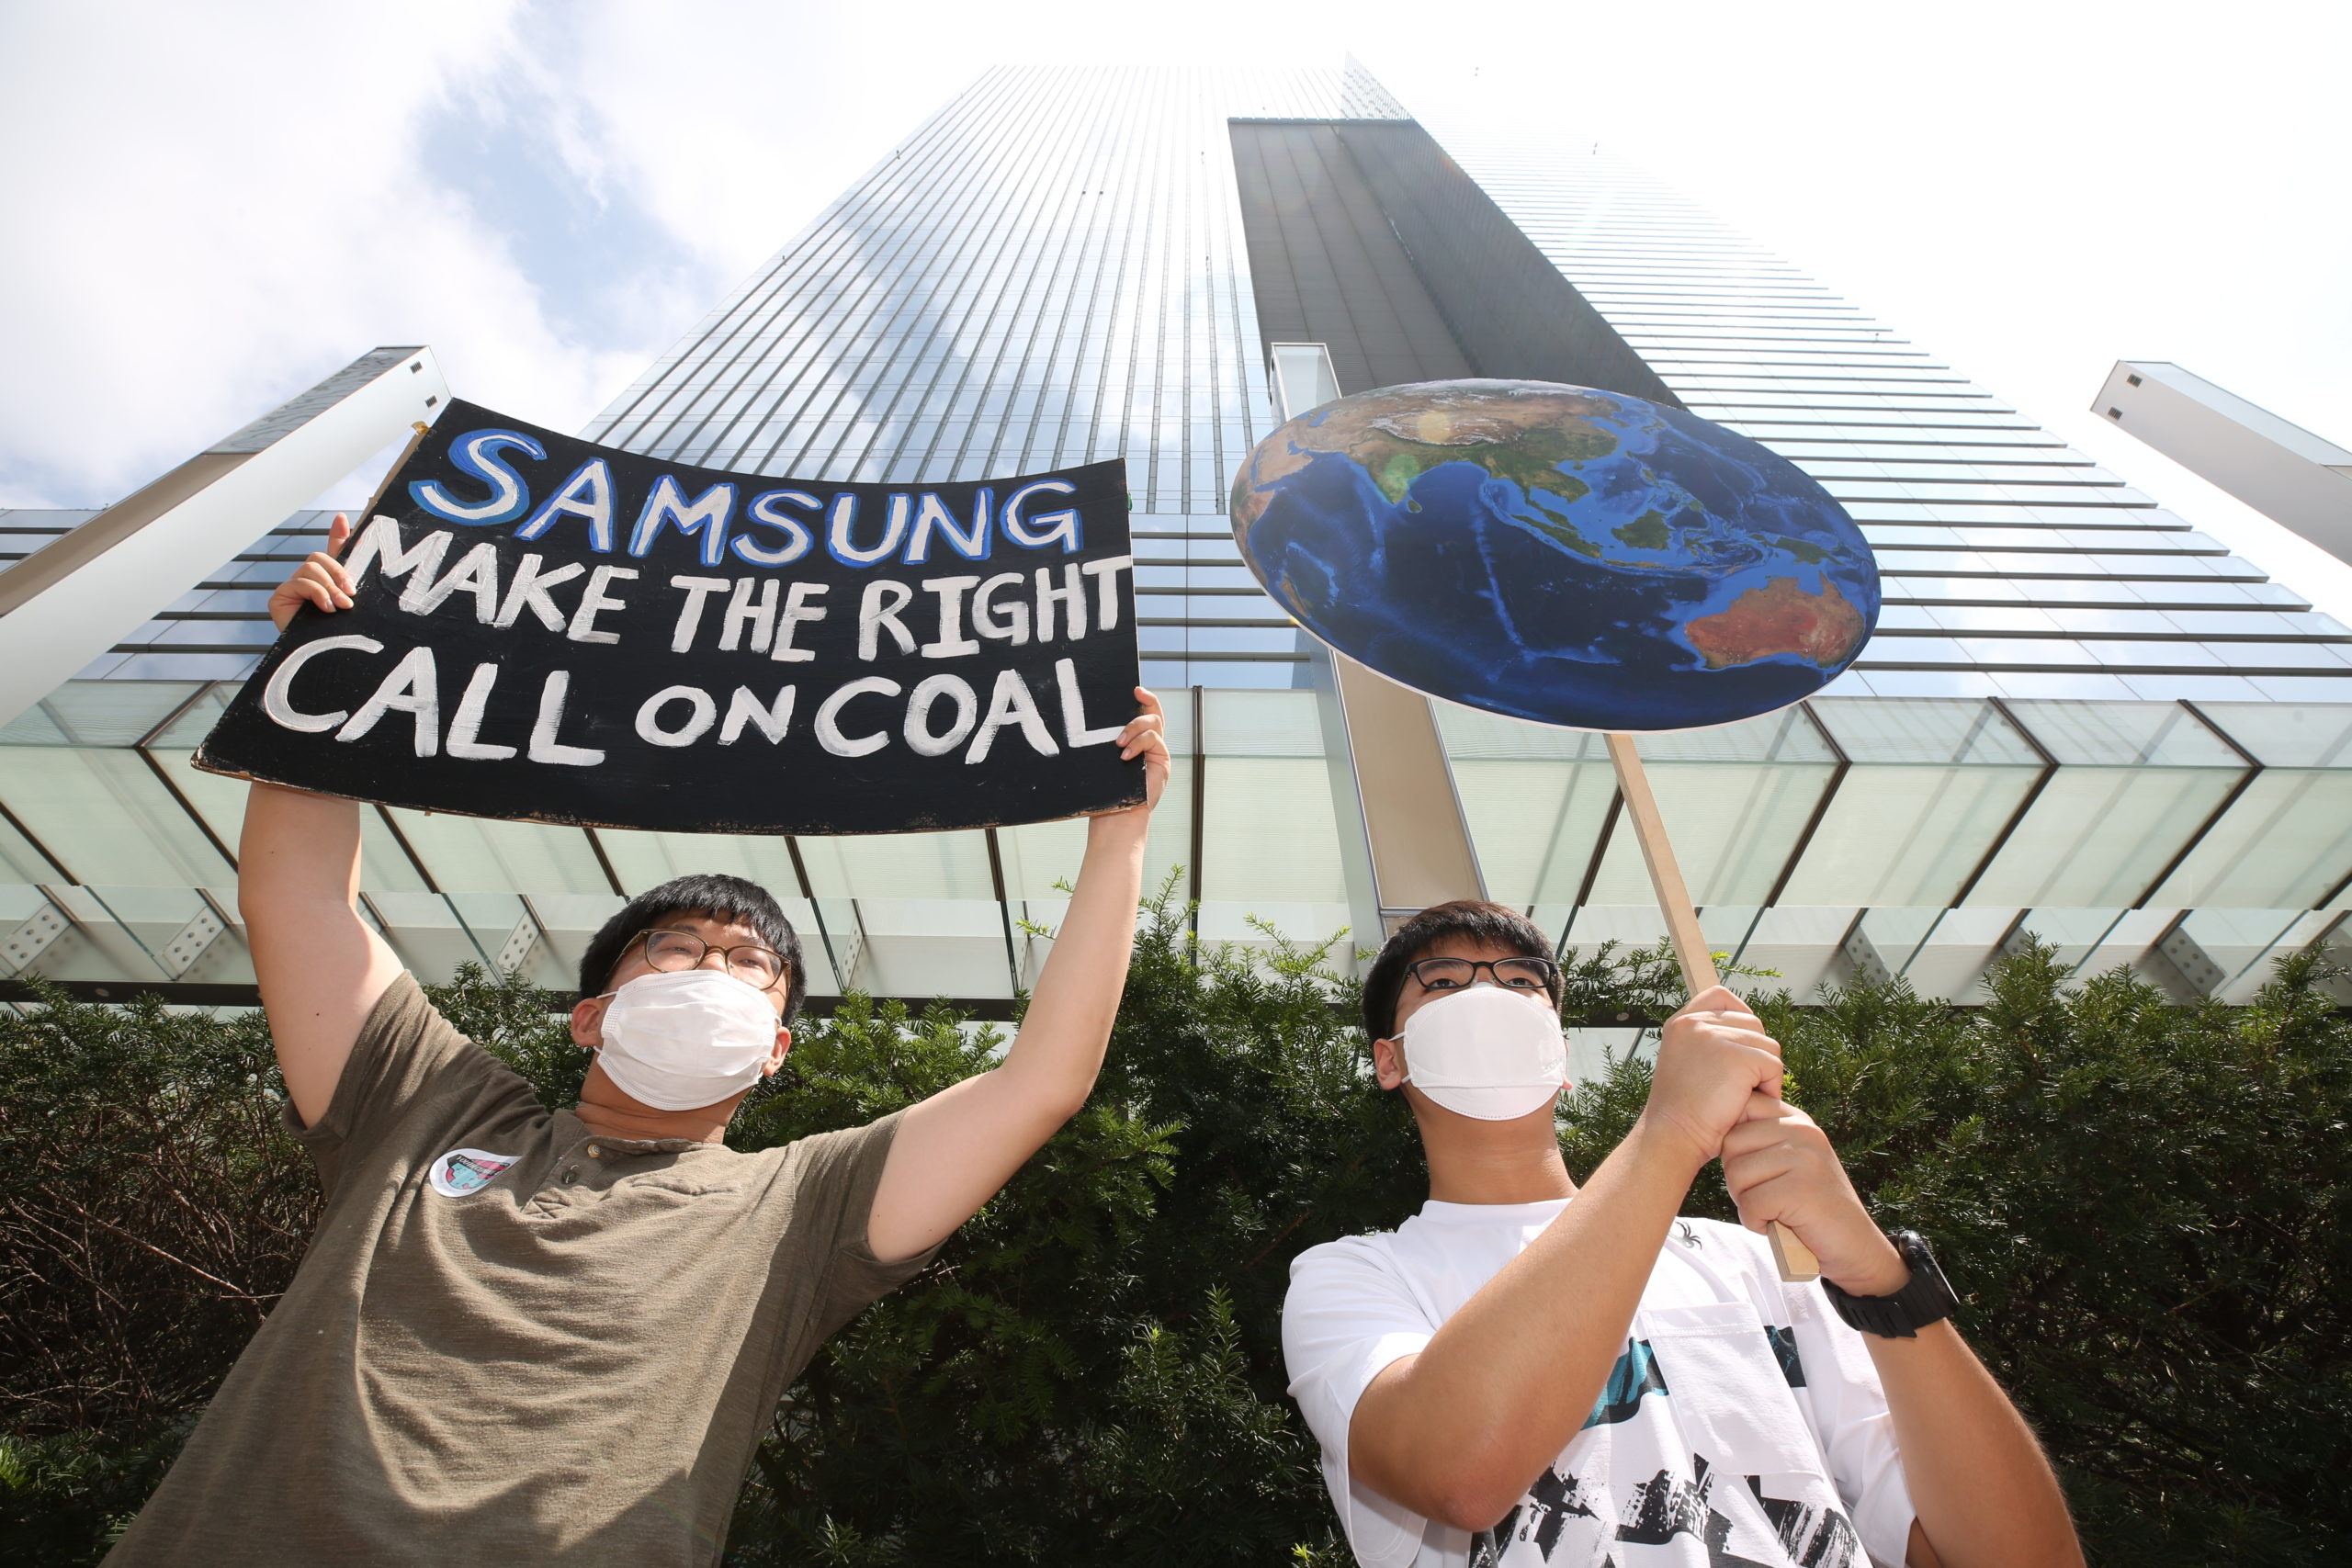 Protesters outside Samsung's Seoul HQ in August, calling for it not to participate in the controversial Vung Ang 2 coal power plant in Vietnam. (Image: Youth4ClimateAction)